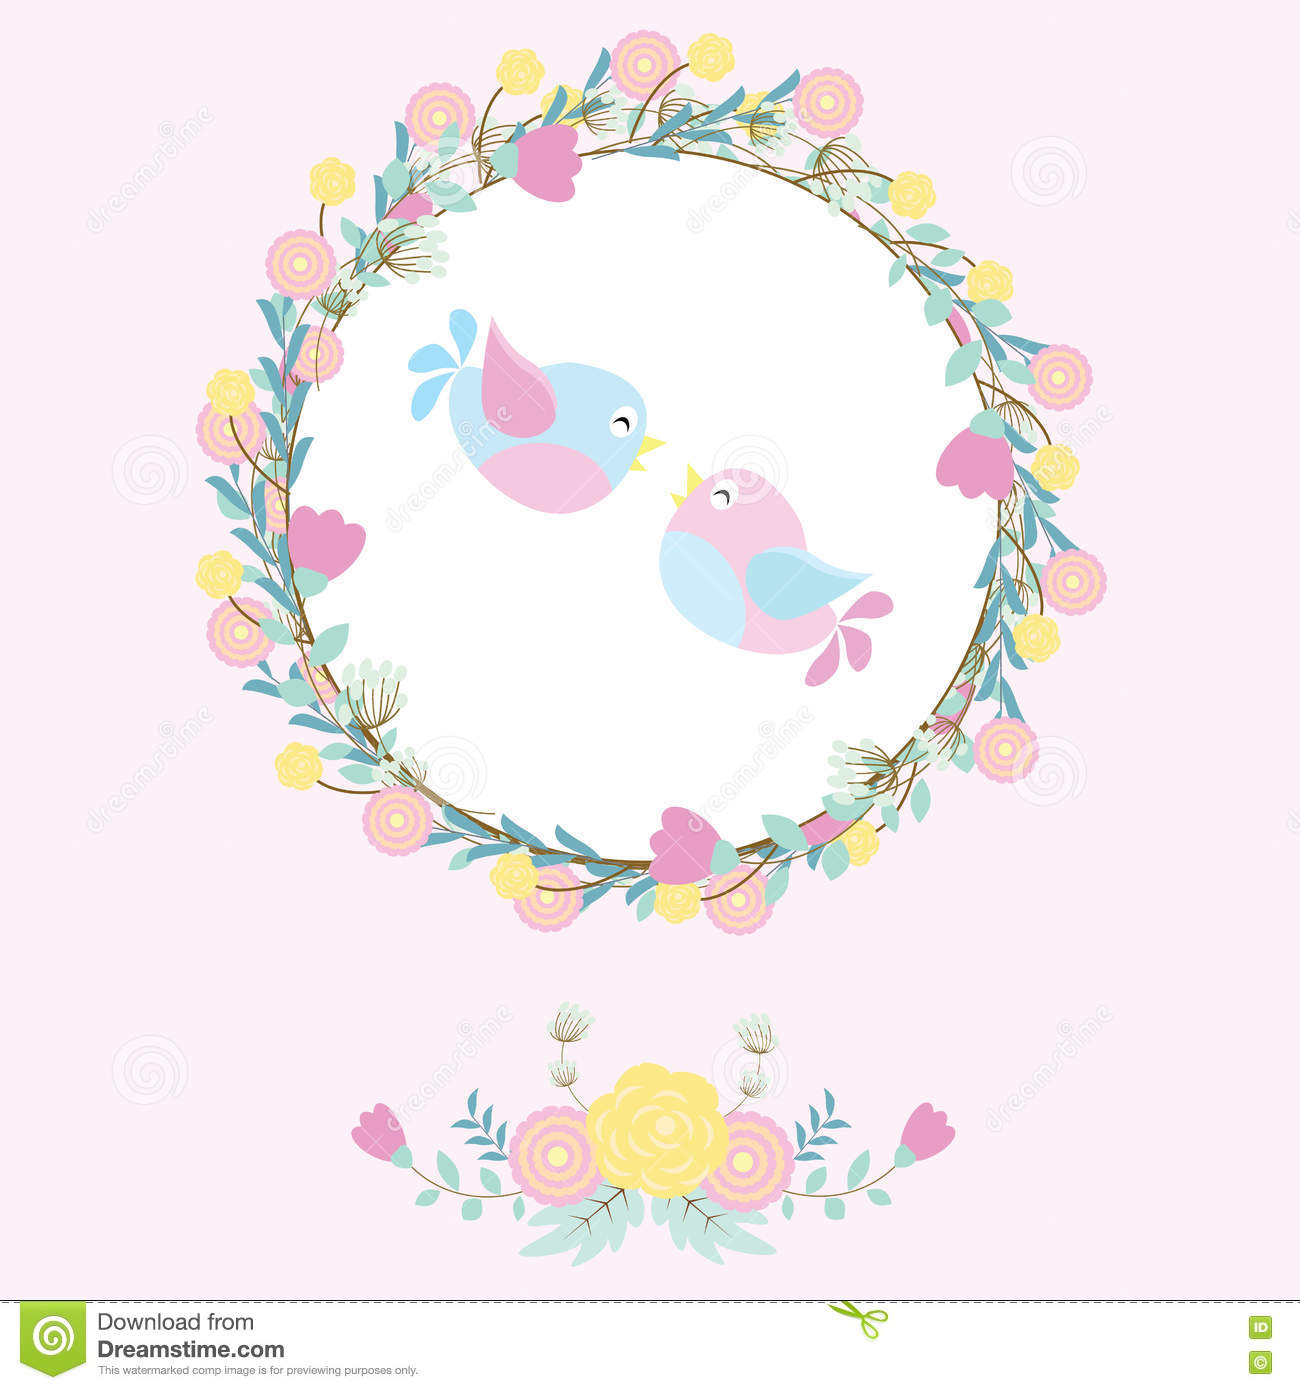 Wedding Illustration With Cute Birds On Flowers Wreath Suitable For ...